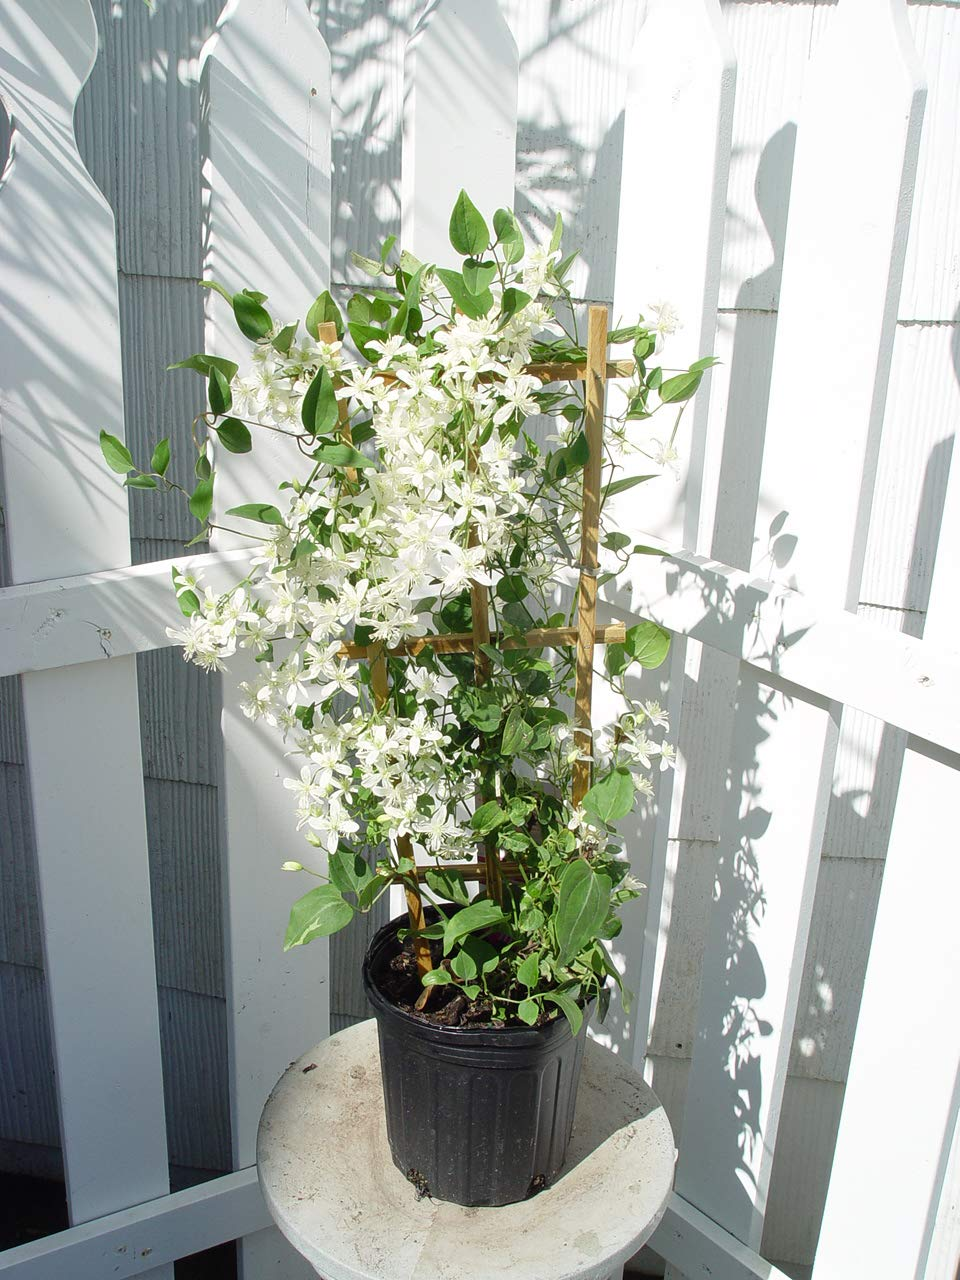 Clematis paniculata (Sweet Autumn Clematis) Perennial, white flowers, 8`` - Size Container